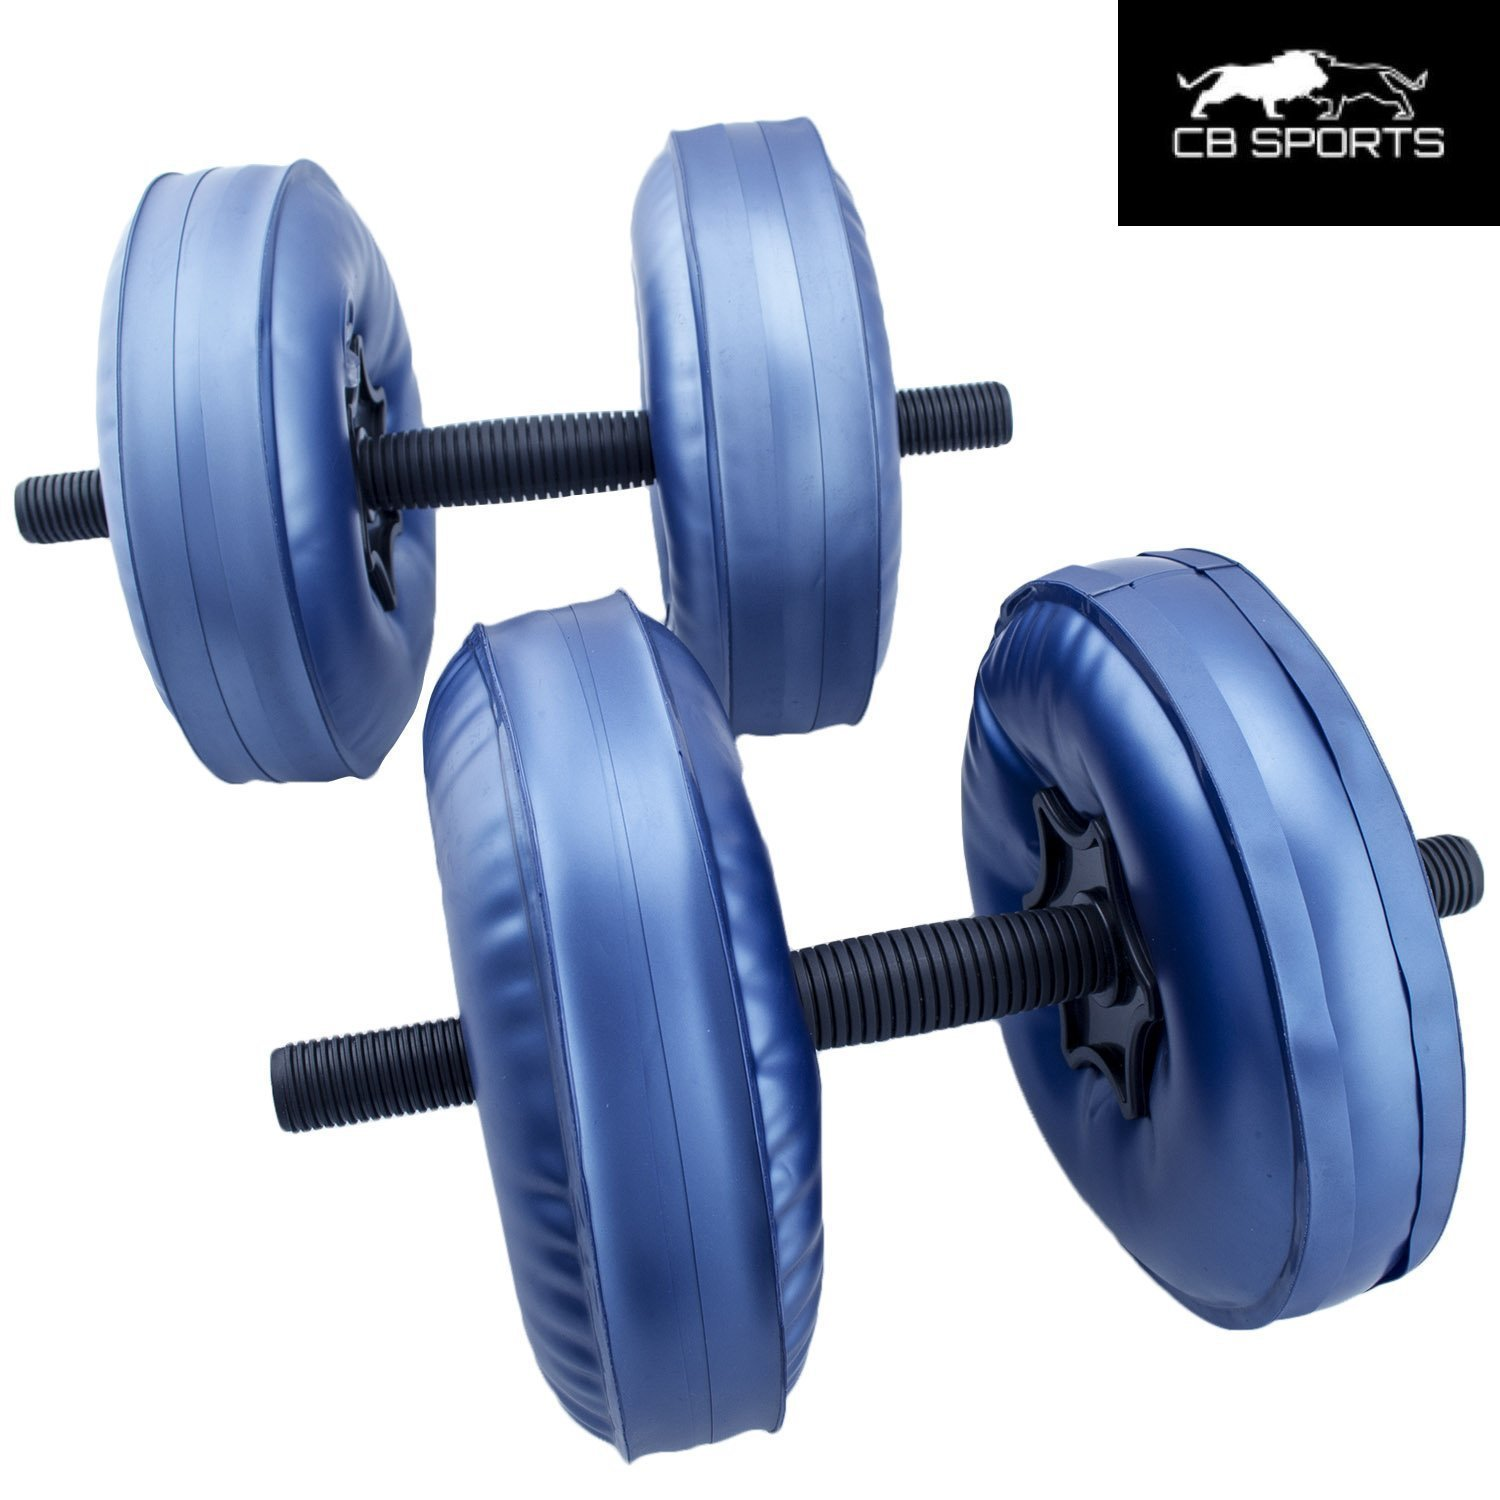 2017 NEW CB Sports Deluxe Travel Dumbbells- Medium Weight upto 22lb/10kg - Gym and Home Workout Equipment (Set of 2) - FILL WITH WATER - Adjustable, Portable Exercise Equipment - Water Weights - BLUE by CB Sports